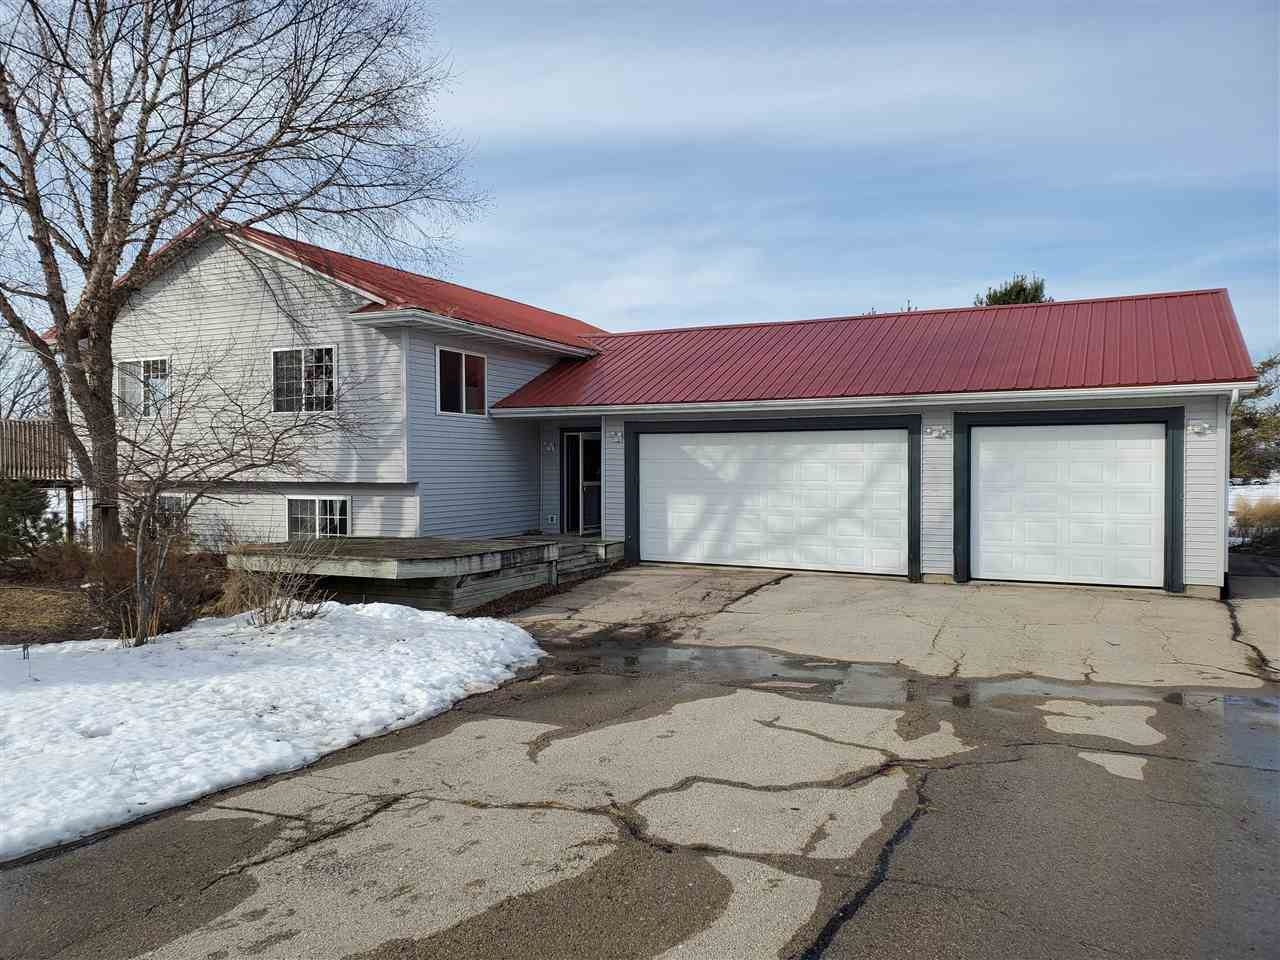 7146 Frenchtown Rd, Belleville, WI 53508 - #: 1877978